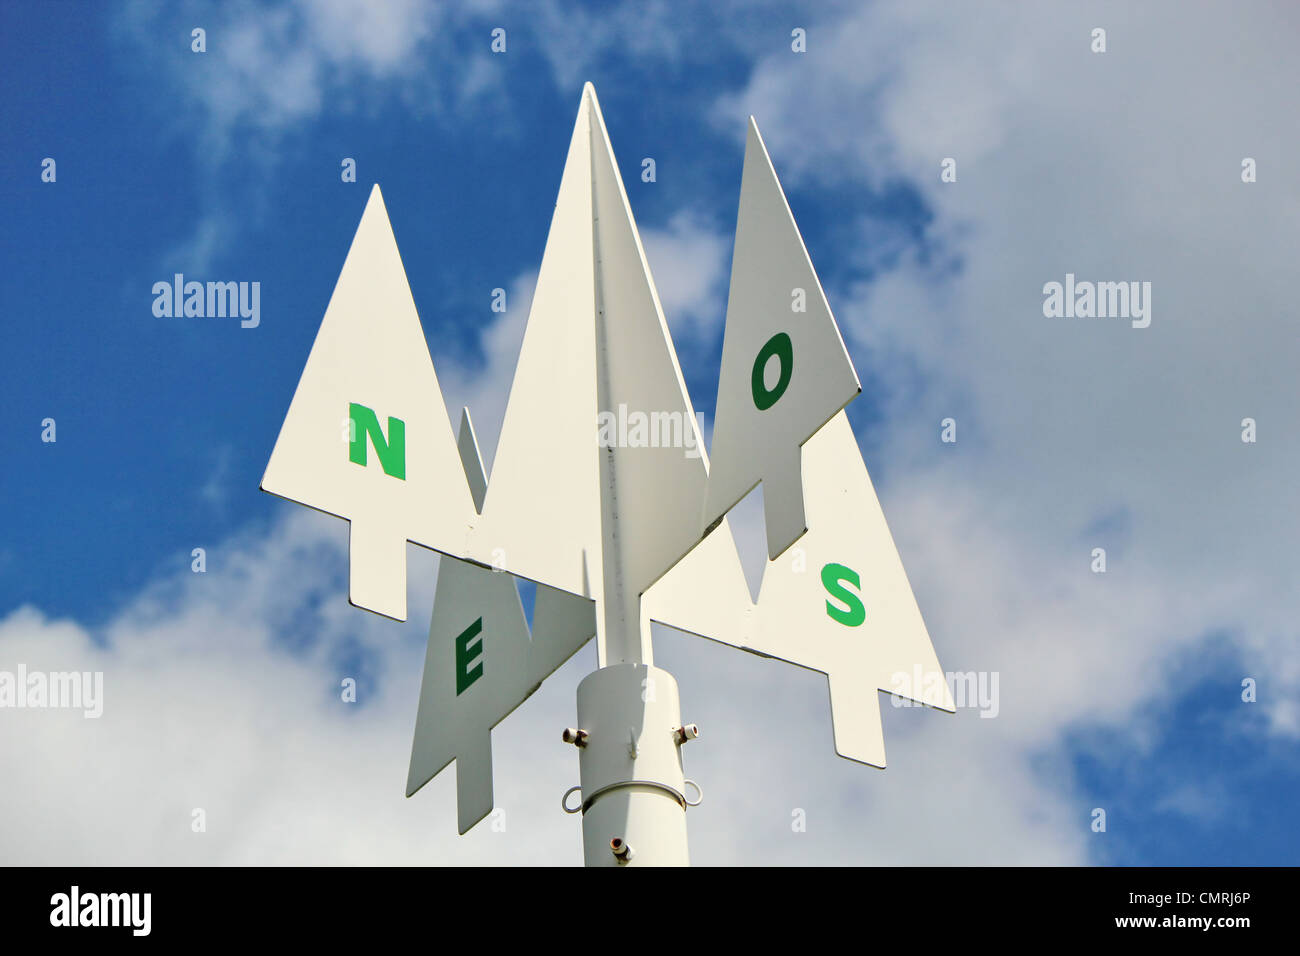 Direction signpost showing the compass points North,South,West and East against a cloudy blue sky. Stock Photo